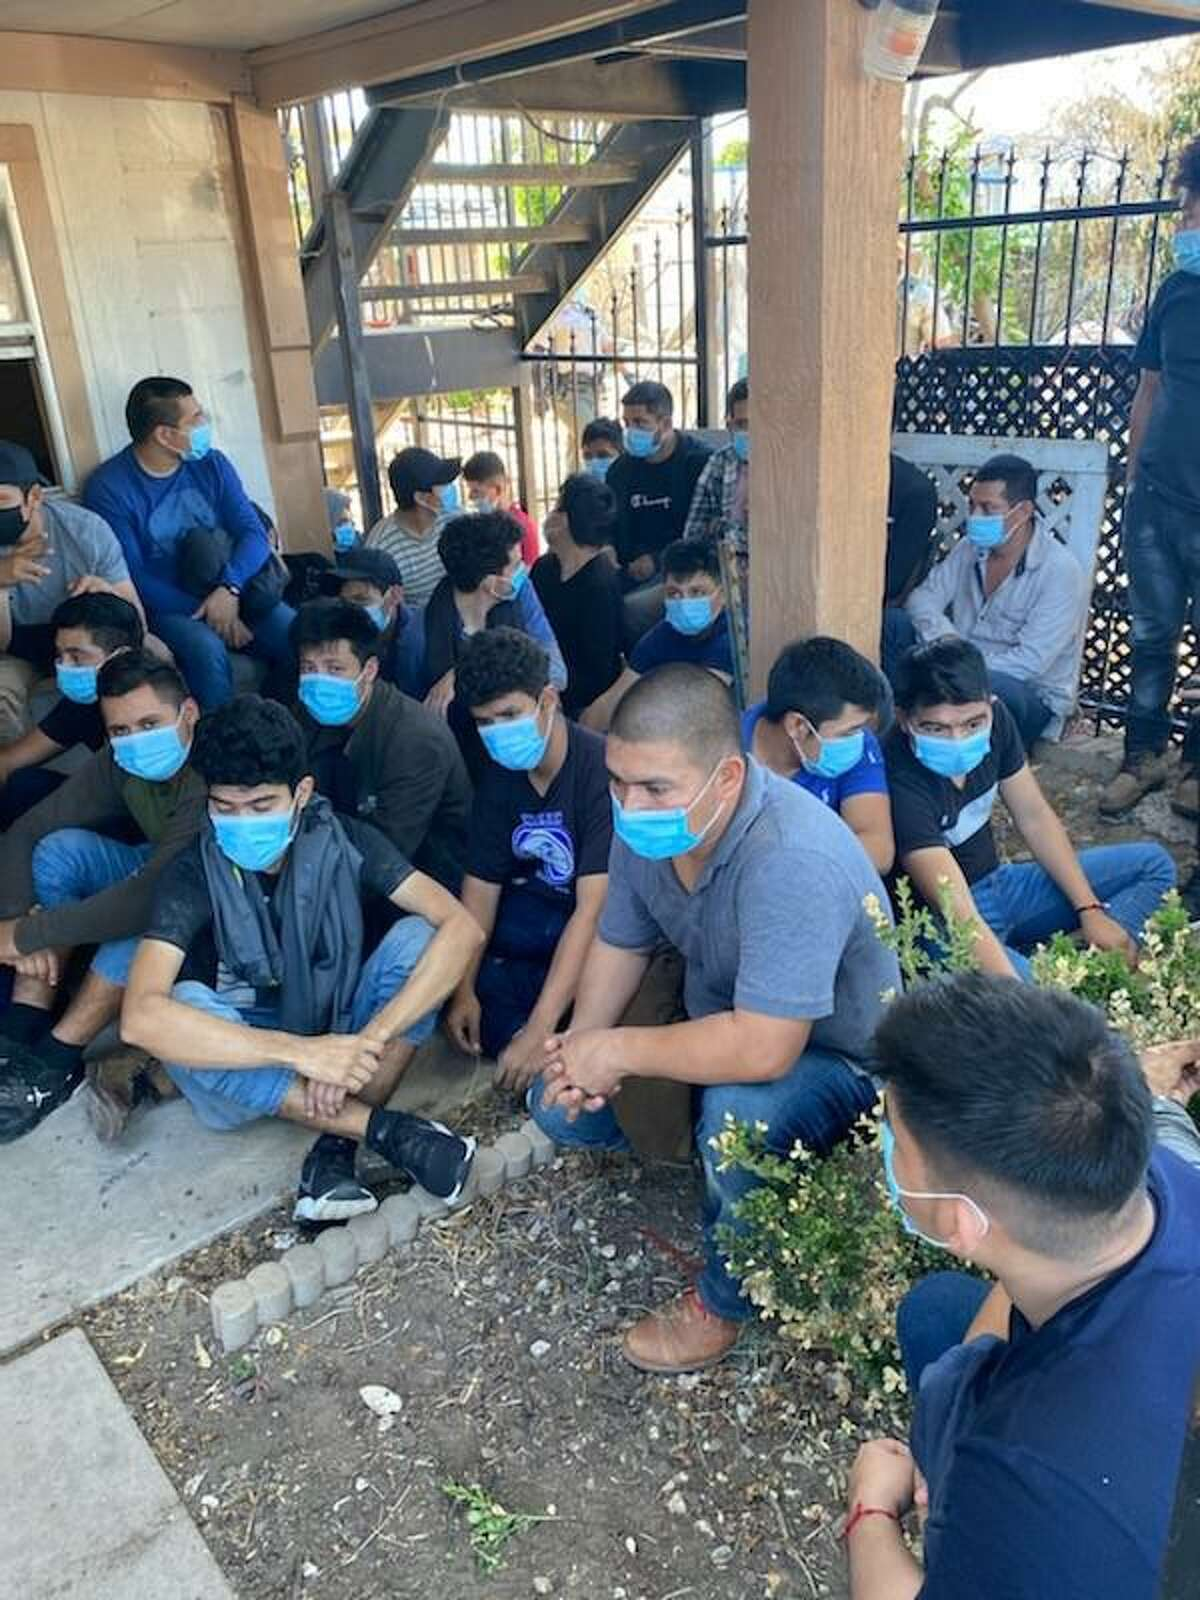 The Webb County Sheriff's Office said they discovered 76 people inside a stash house that was in poor conditions. The individuals were determined to be migrants who had crossed the border illegally.